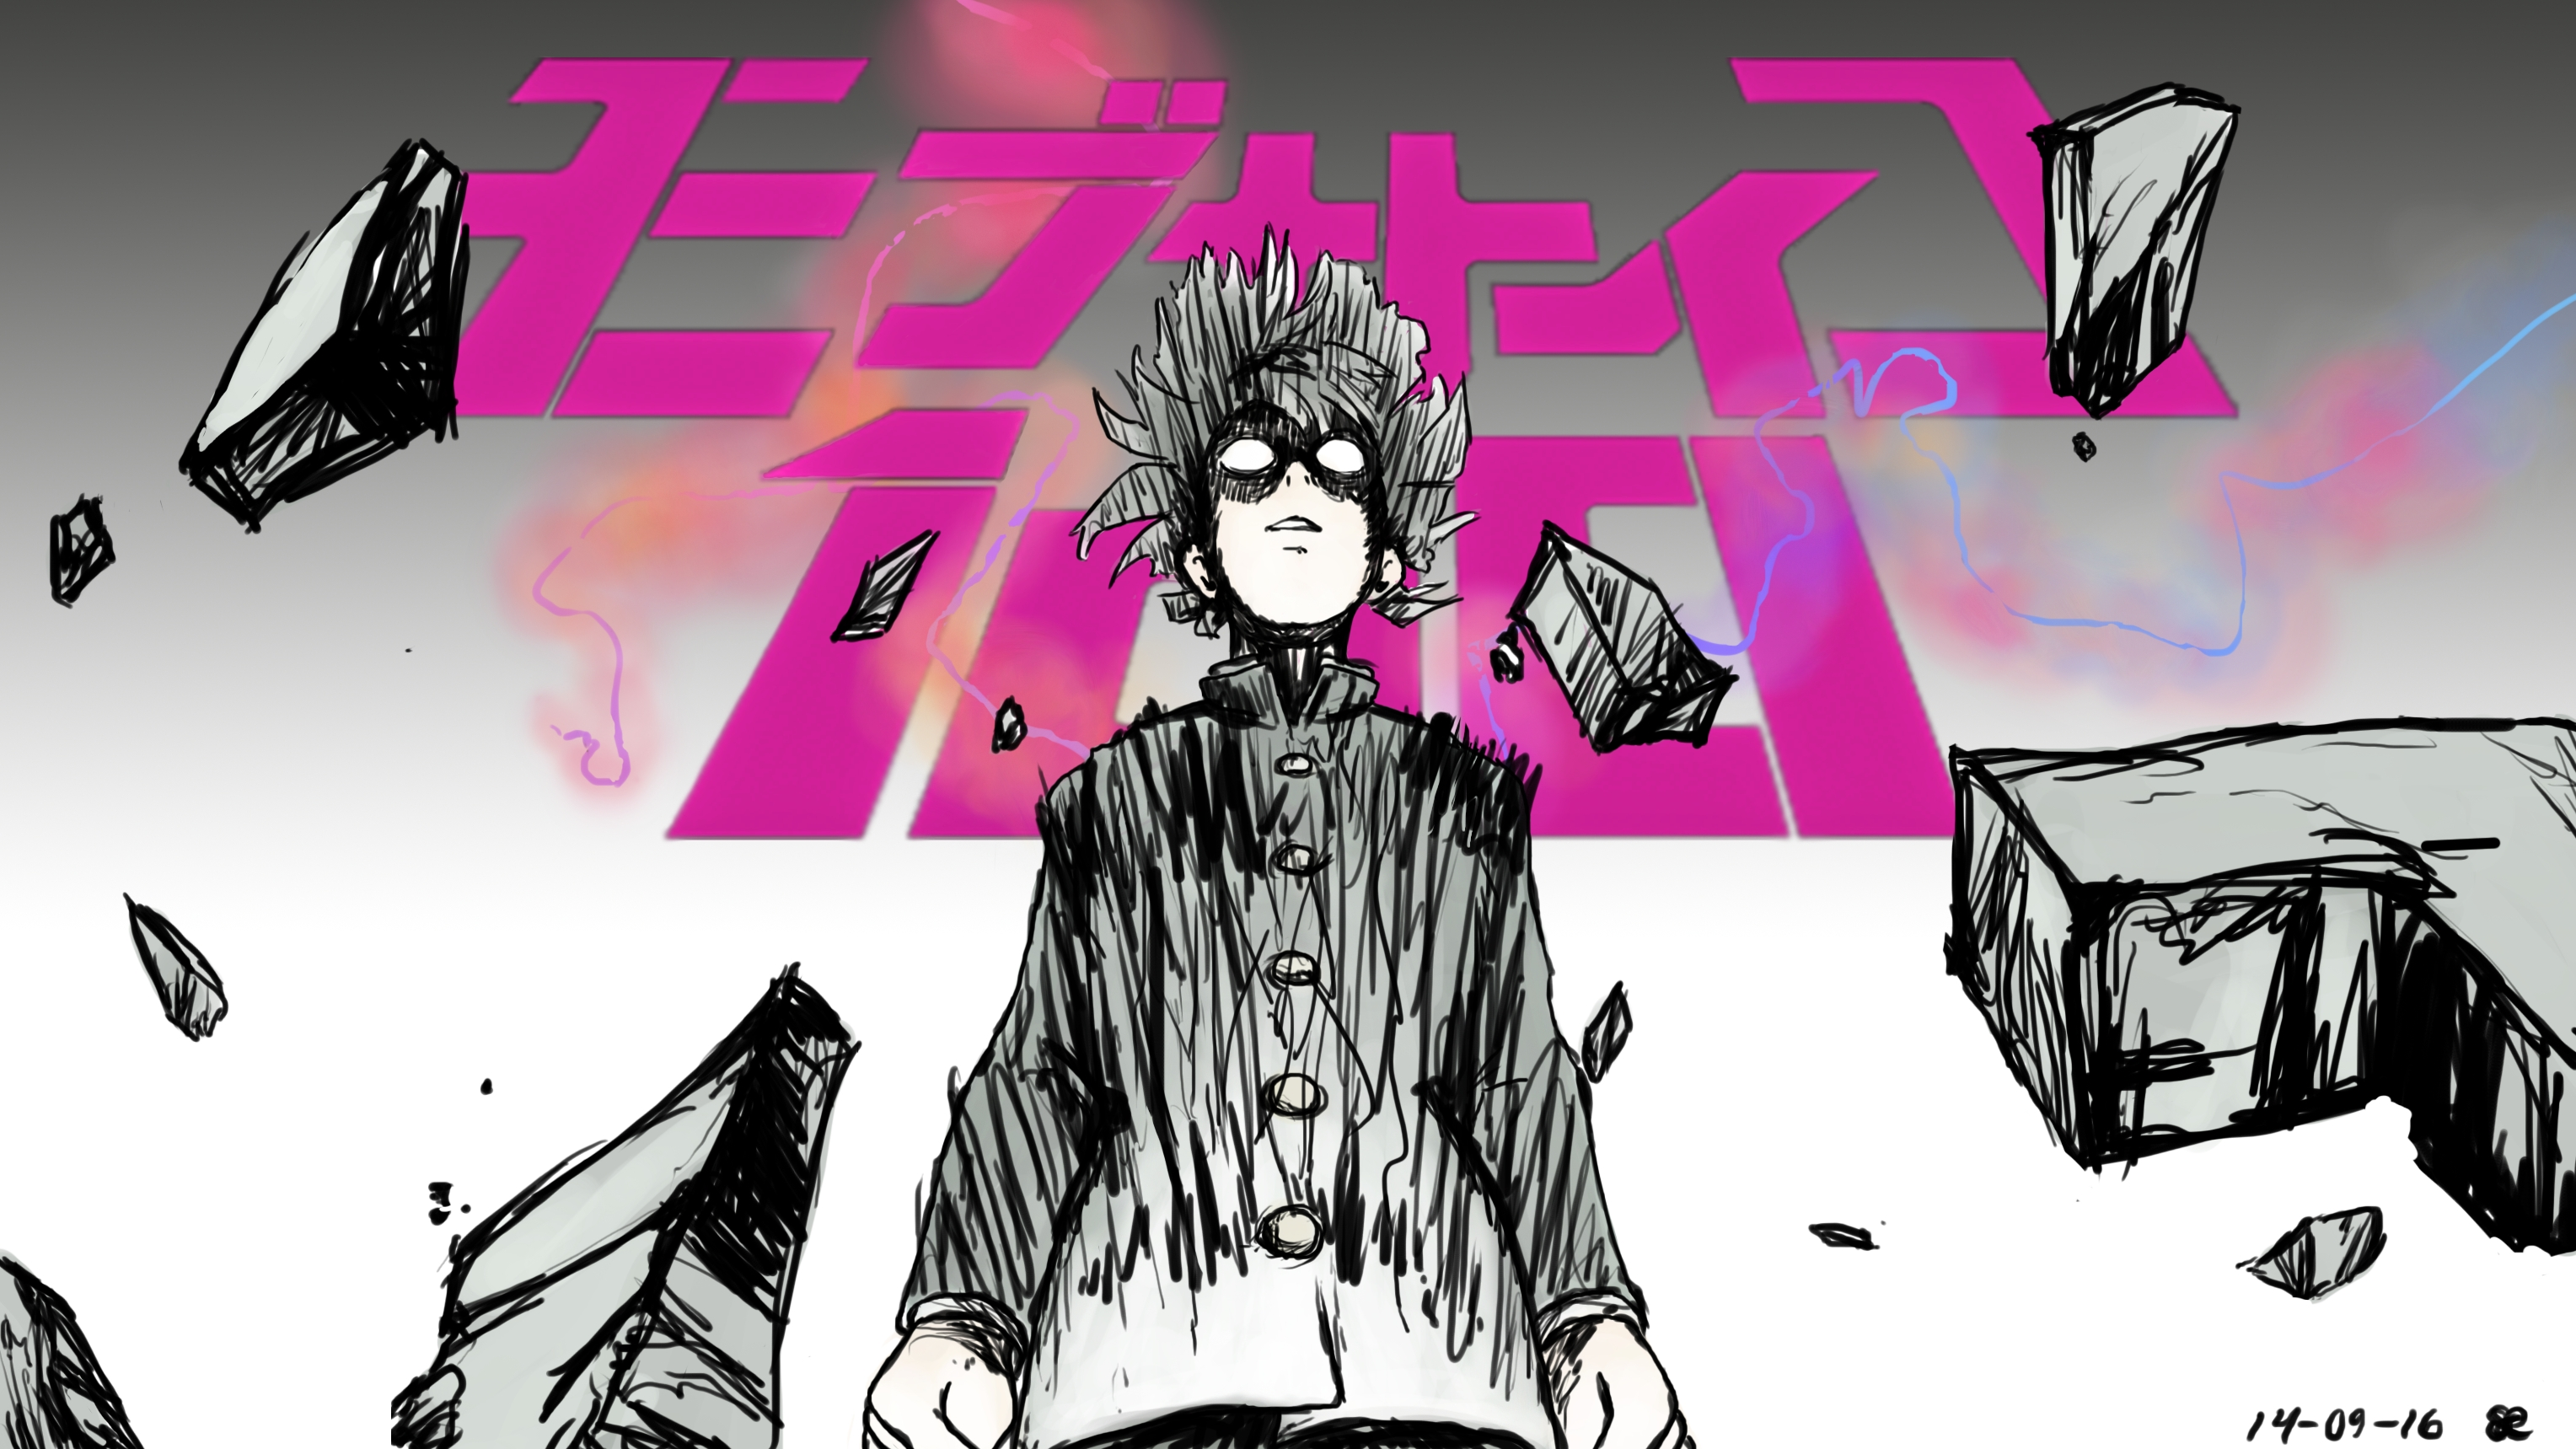 69 mob psycho 100 hd wallpapers | background images - wallpaper abyss